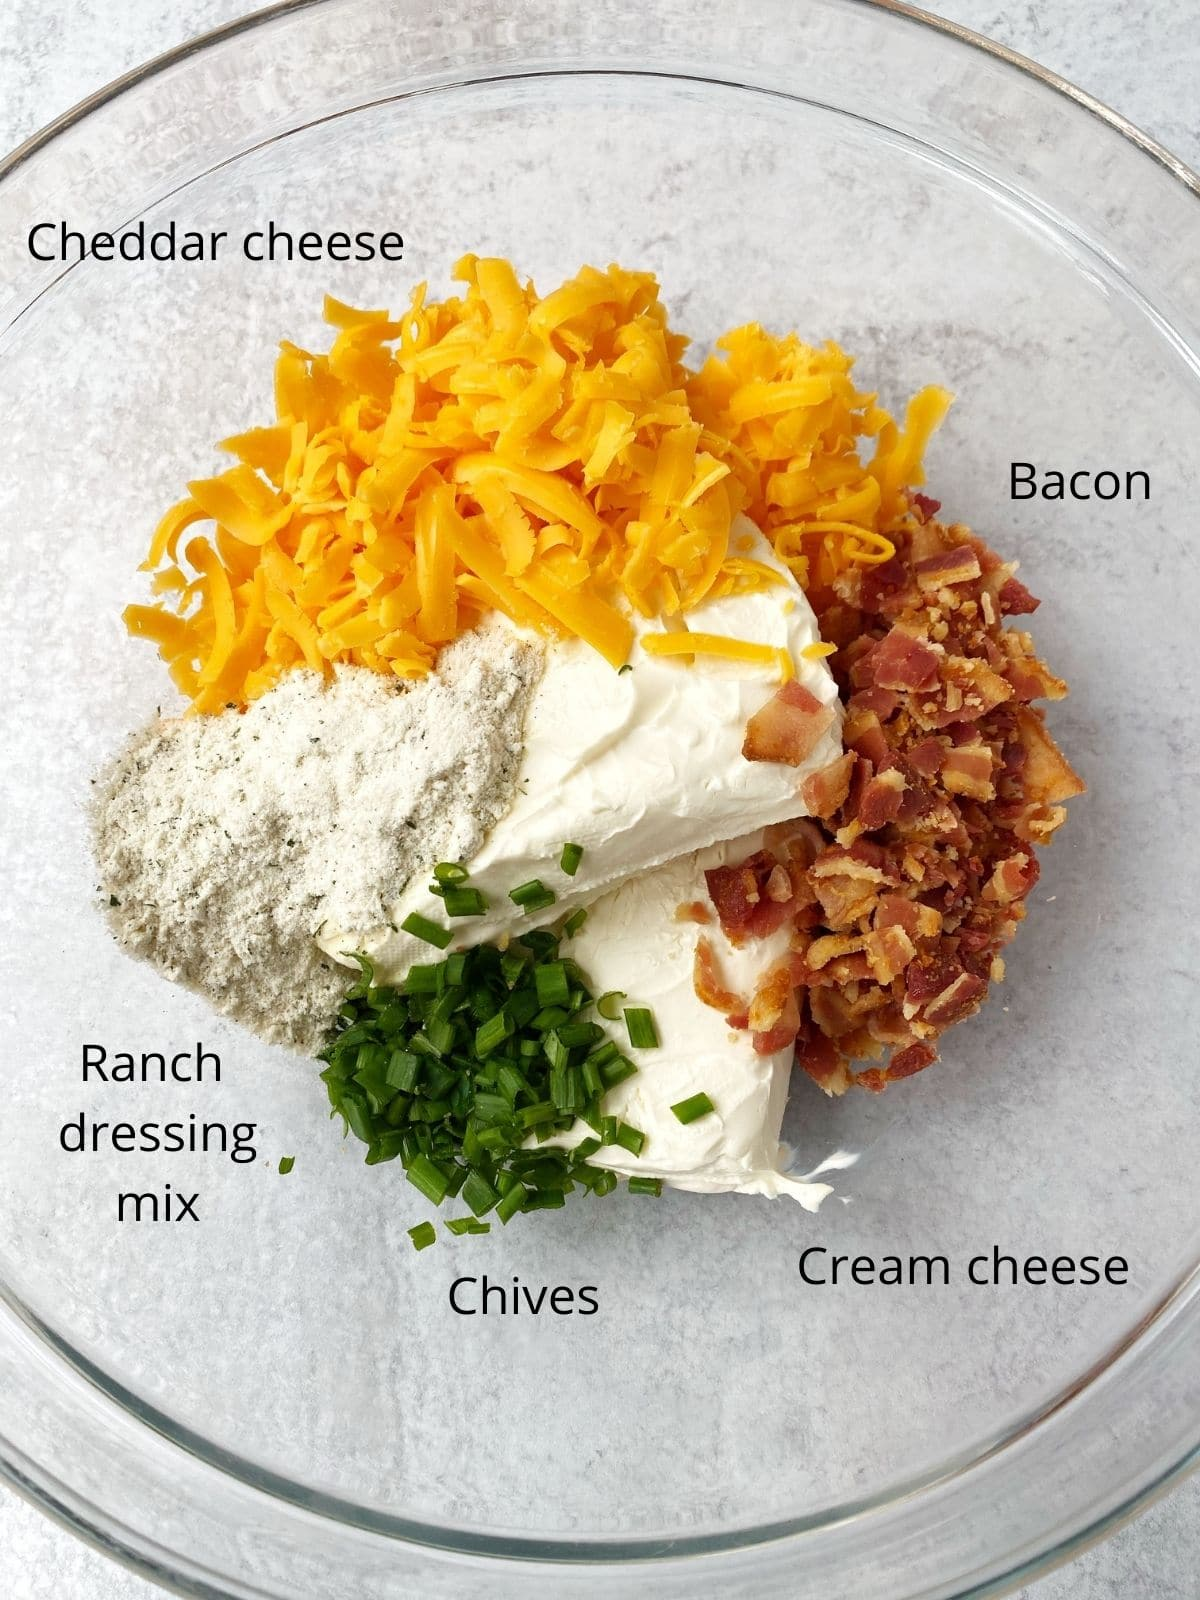 cheeses, bacon, ranch seasoning, and chives in a bowl